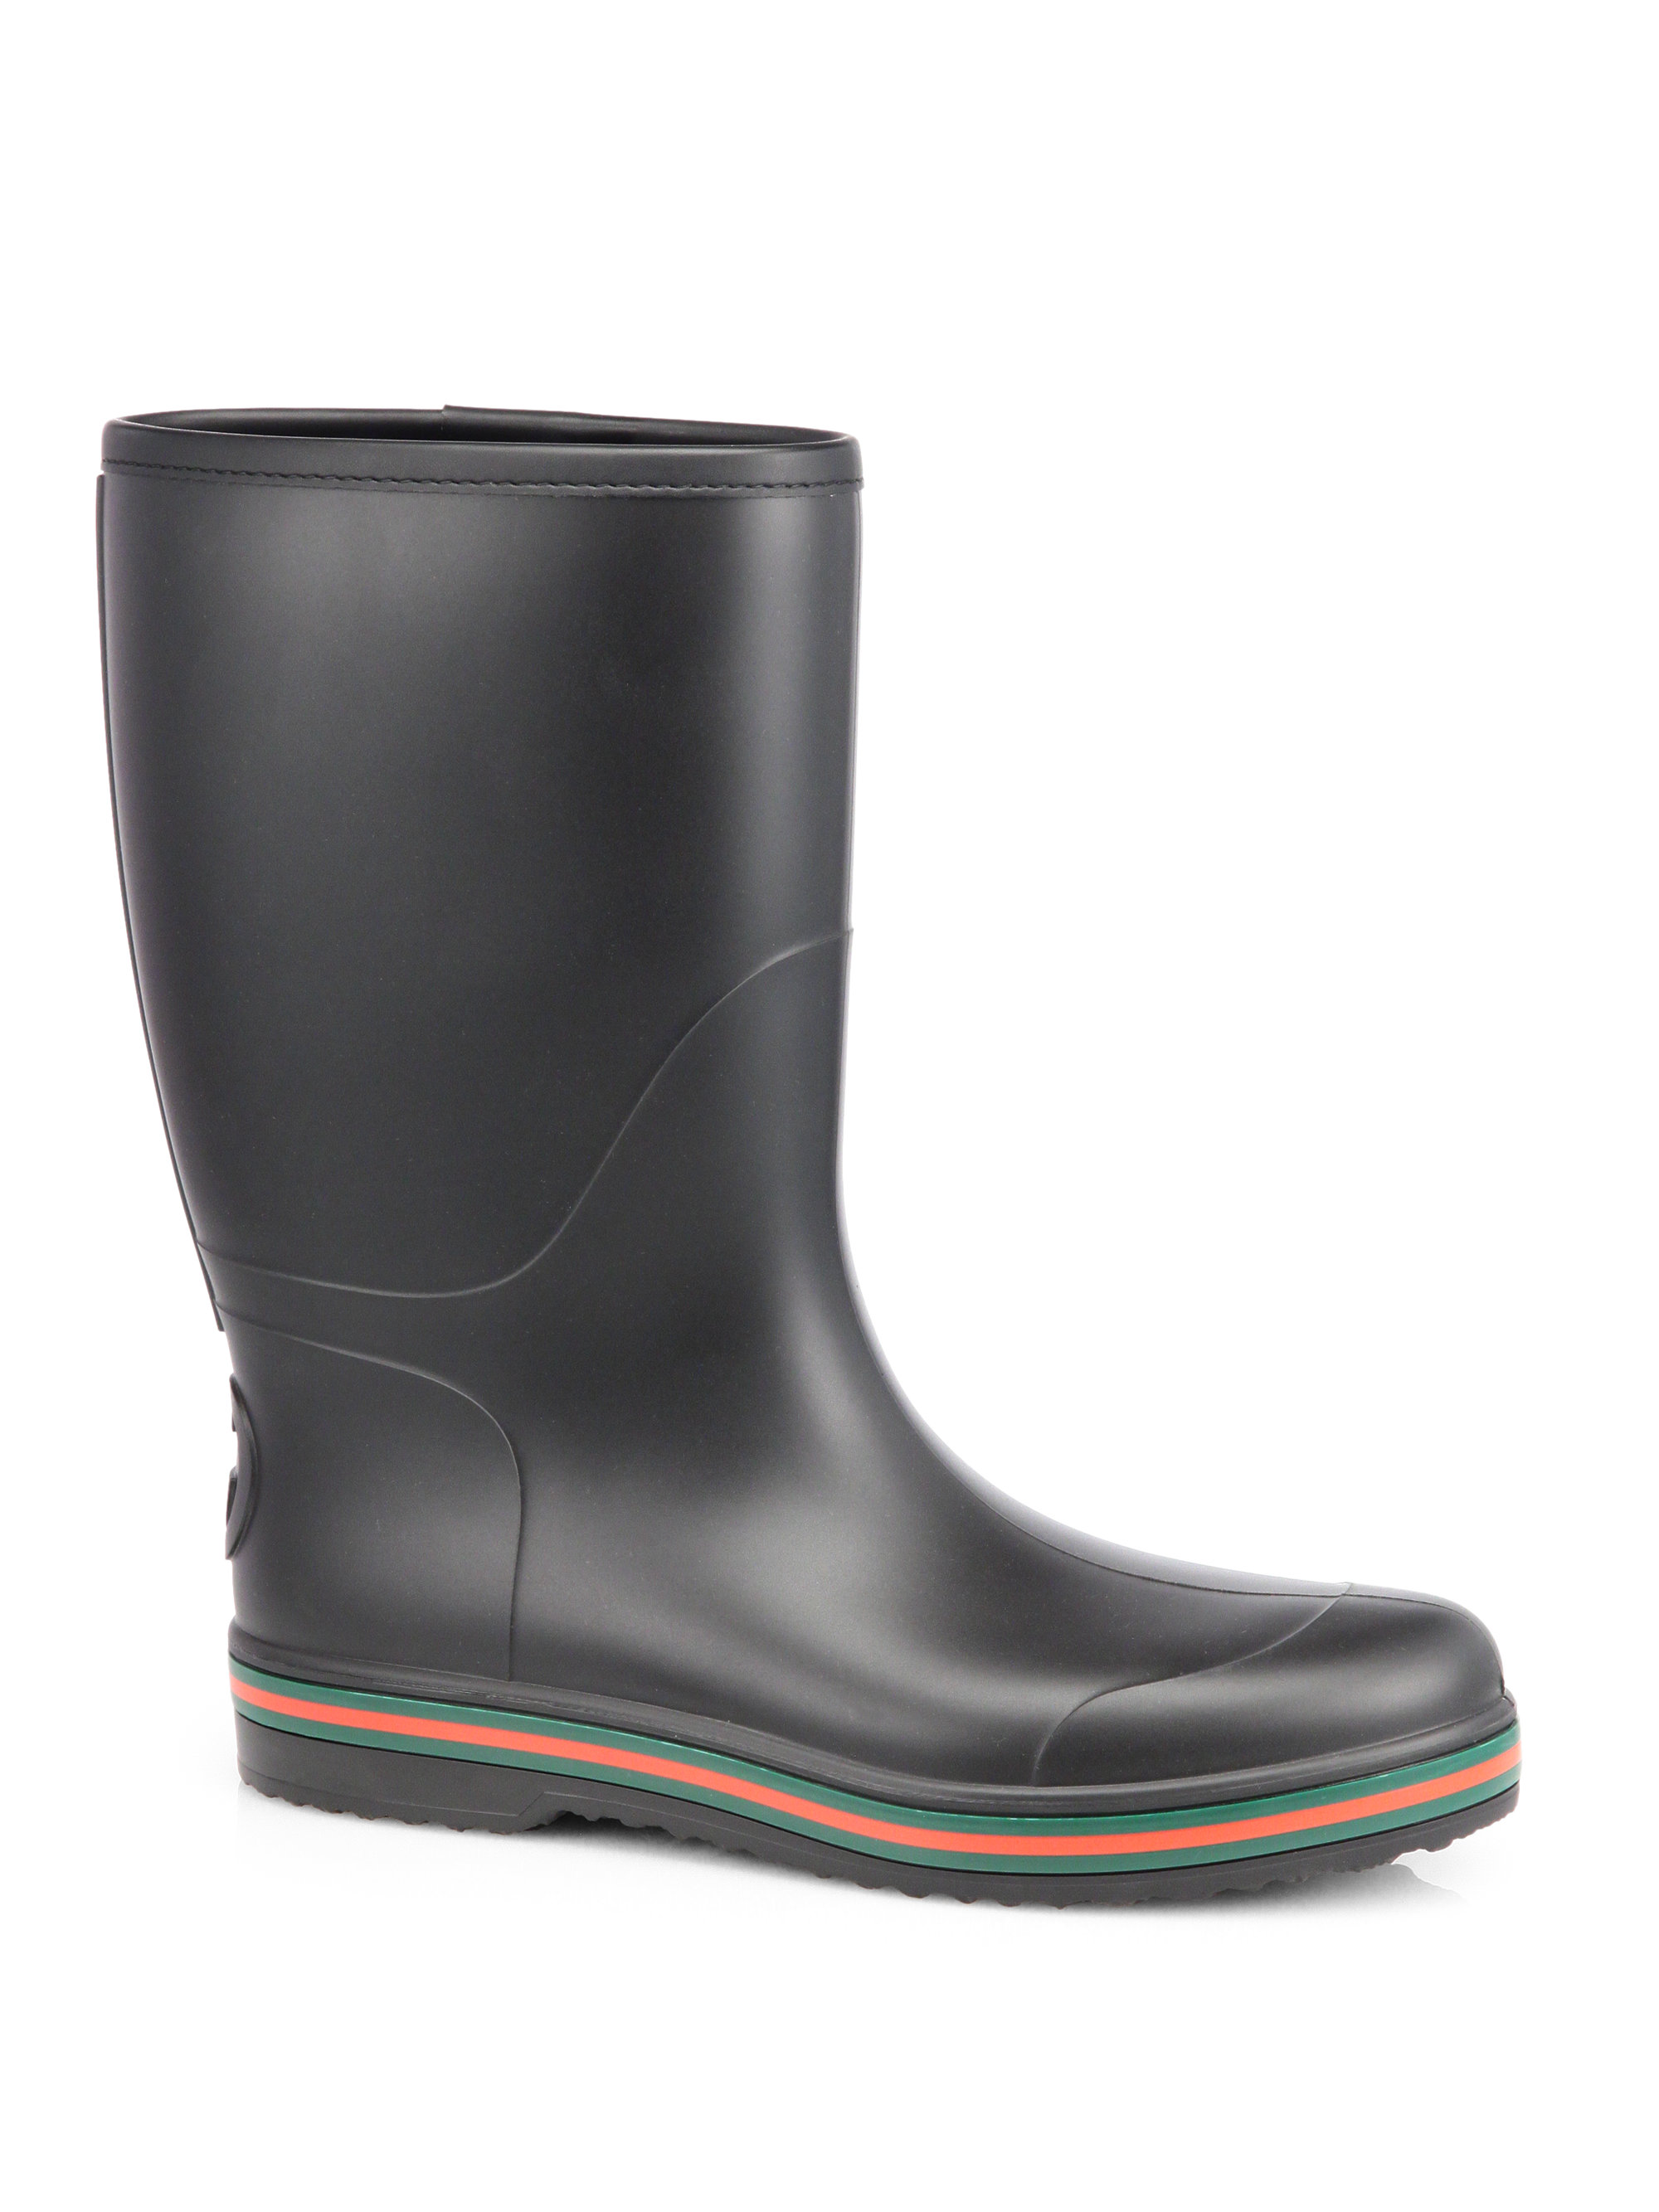 lyst gucci rubber rain boots in black for men